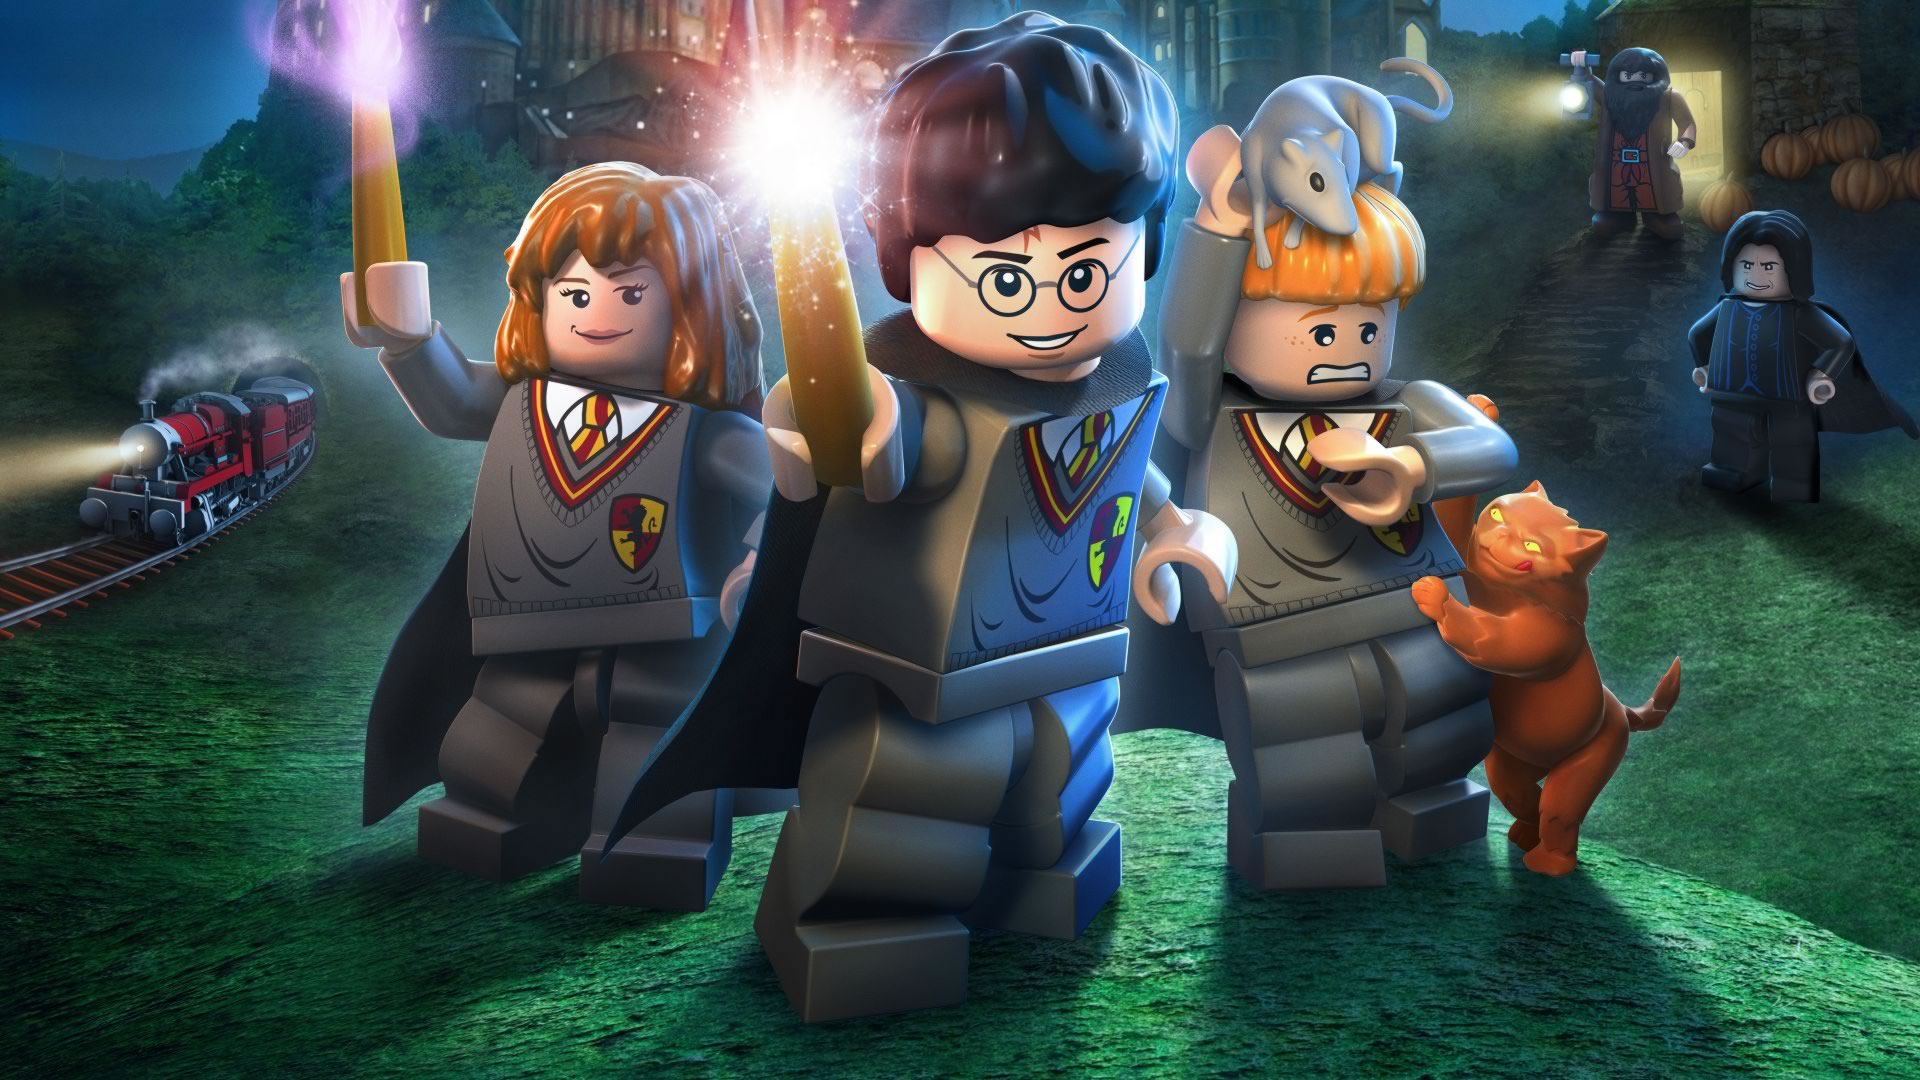 download wallpaper: LEGO Harry Potter wallpaper